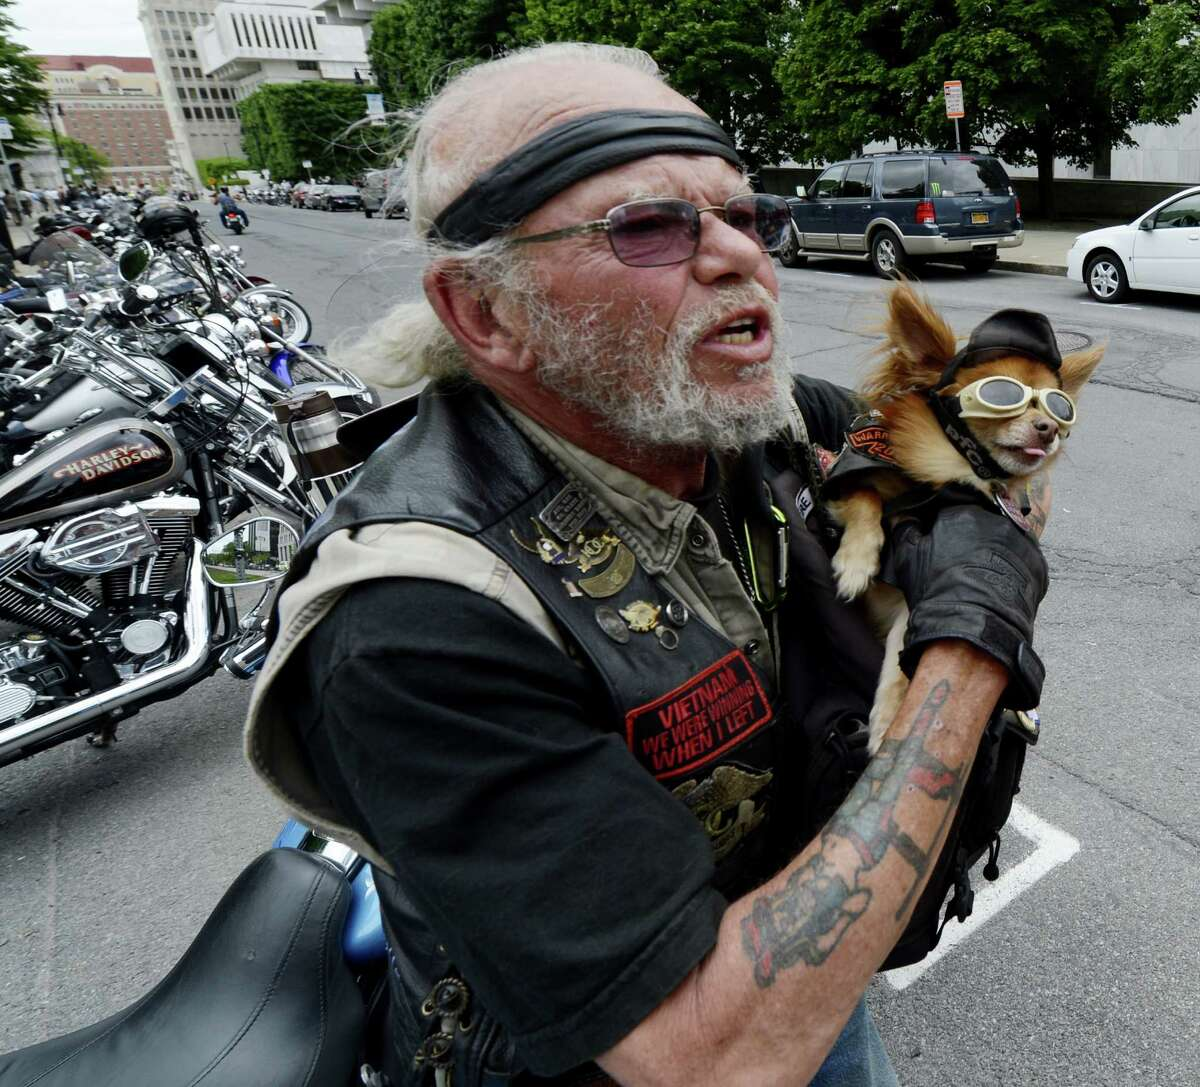 Anti-Helmut Law demonstrator Robert Shoemaker holds his dog Oso as he joins approximately 250 anti-helmet Law demonstrators descended on the State Capitol in Albany, N.Y. today May 21, 2012. (Skip Dickstein / Times Union)